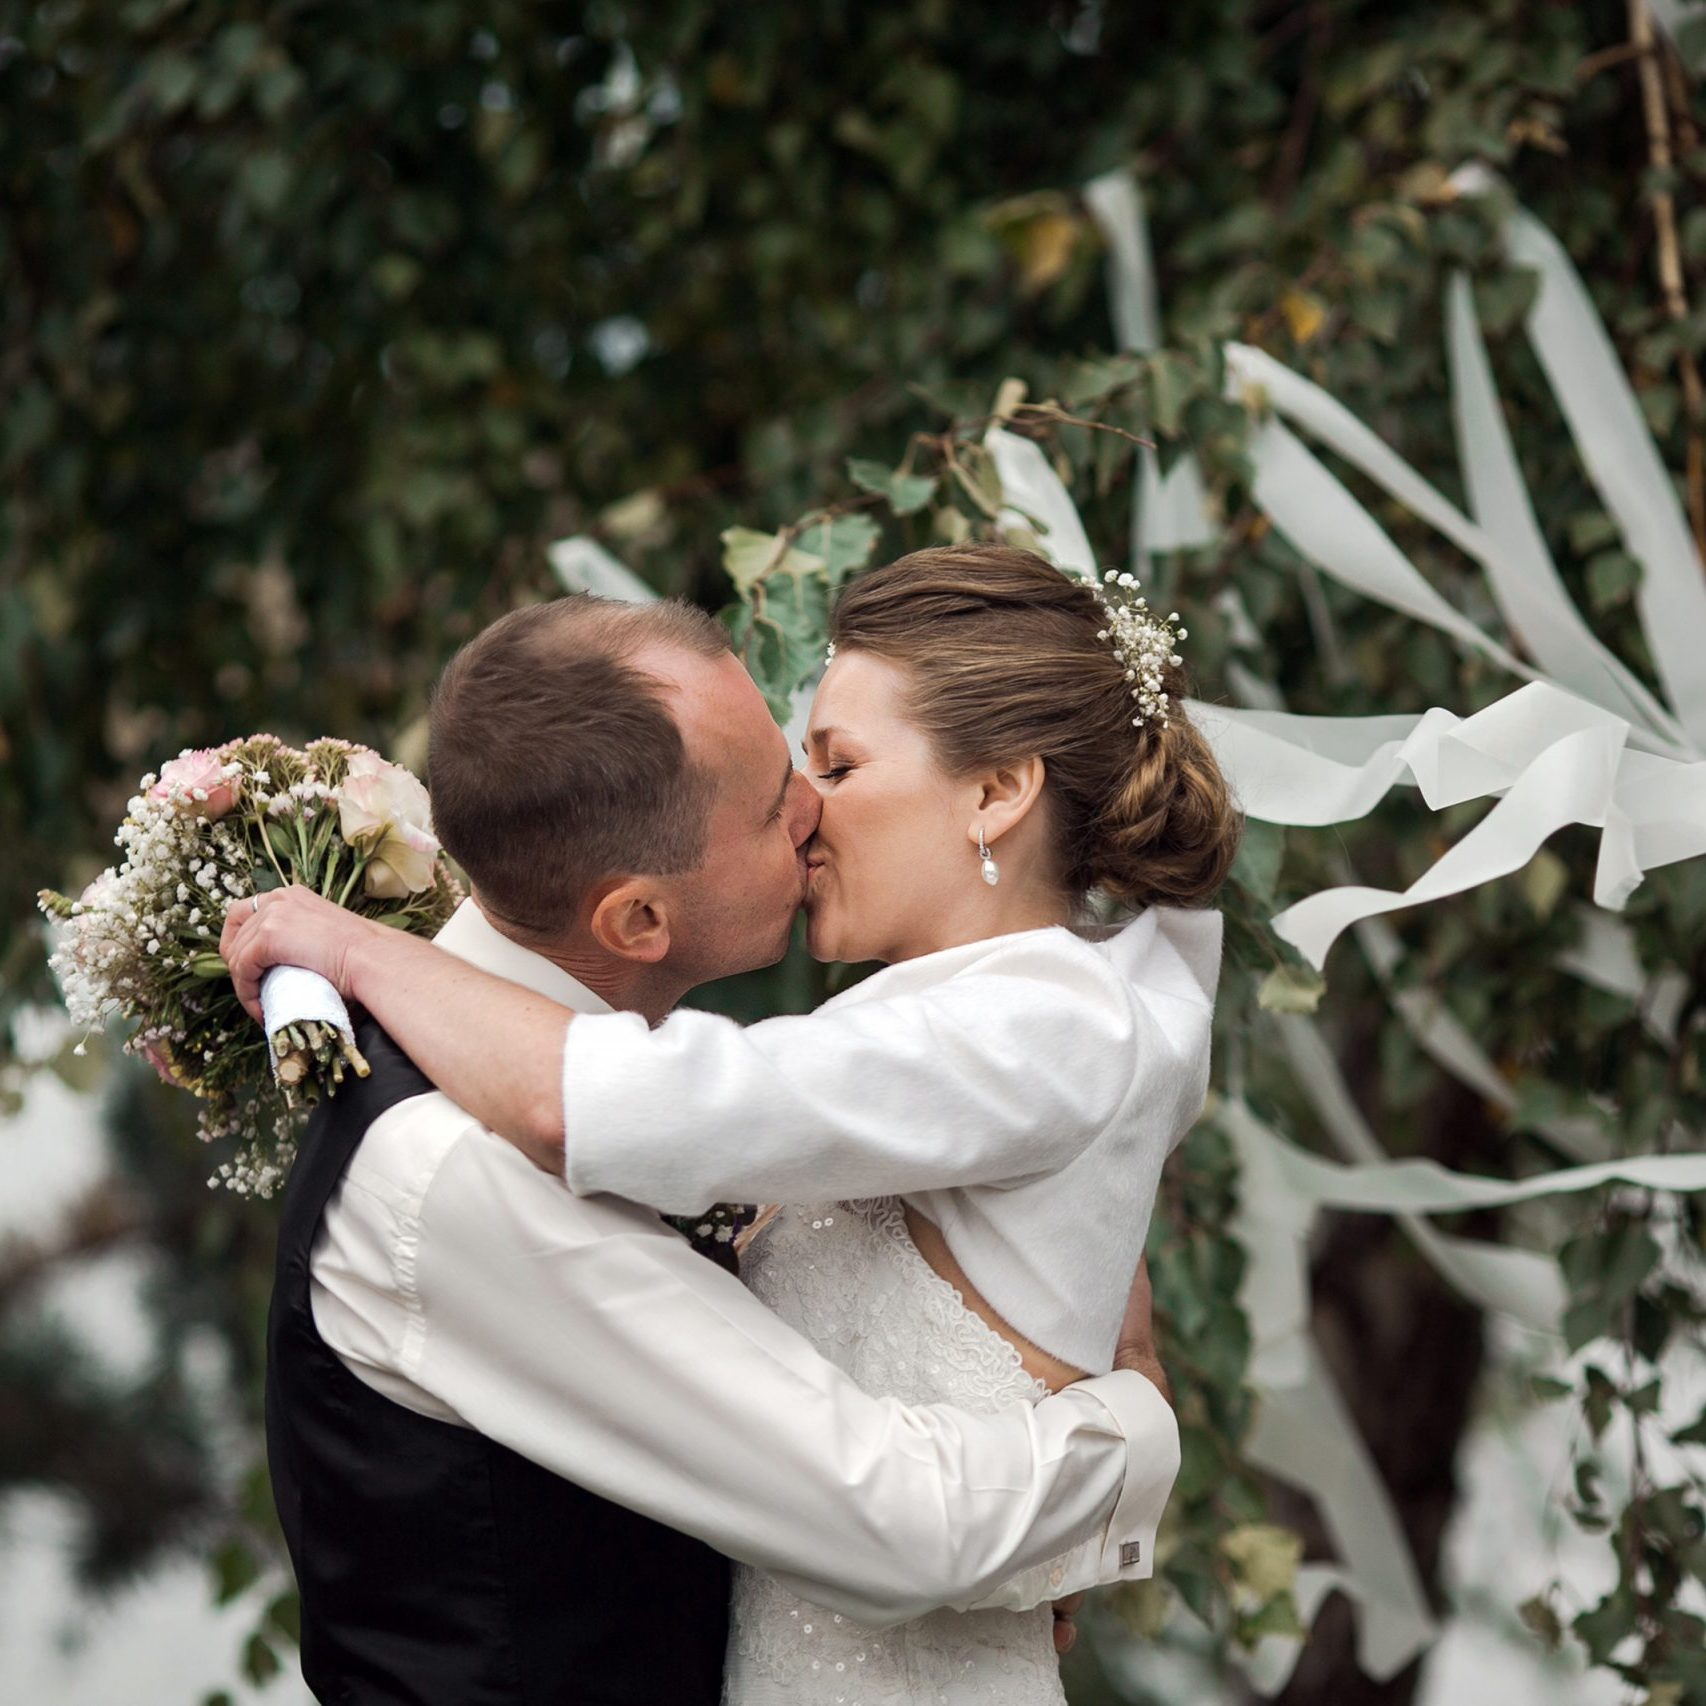 beautiful bride kisses the groom at a wedding ceremony